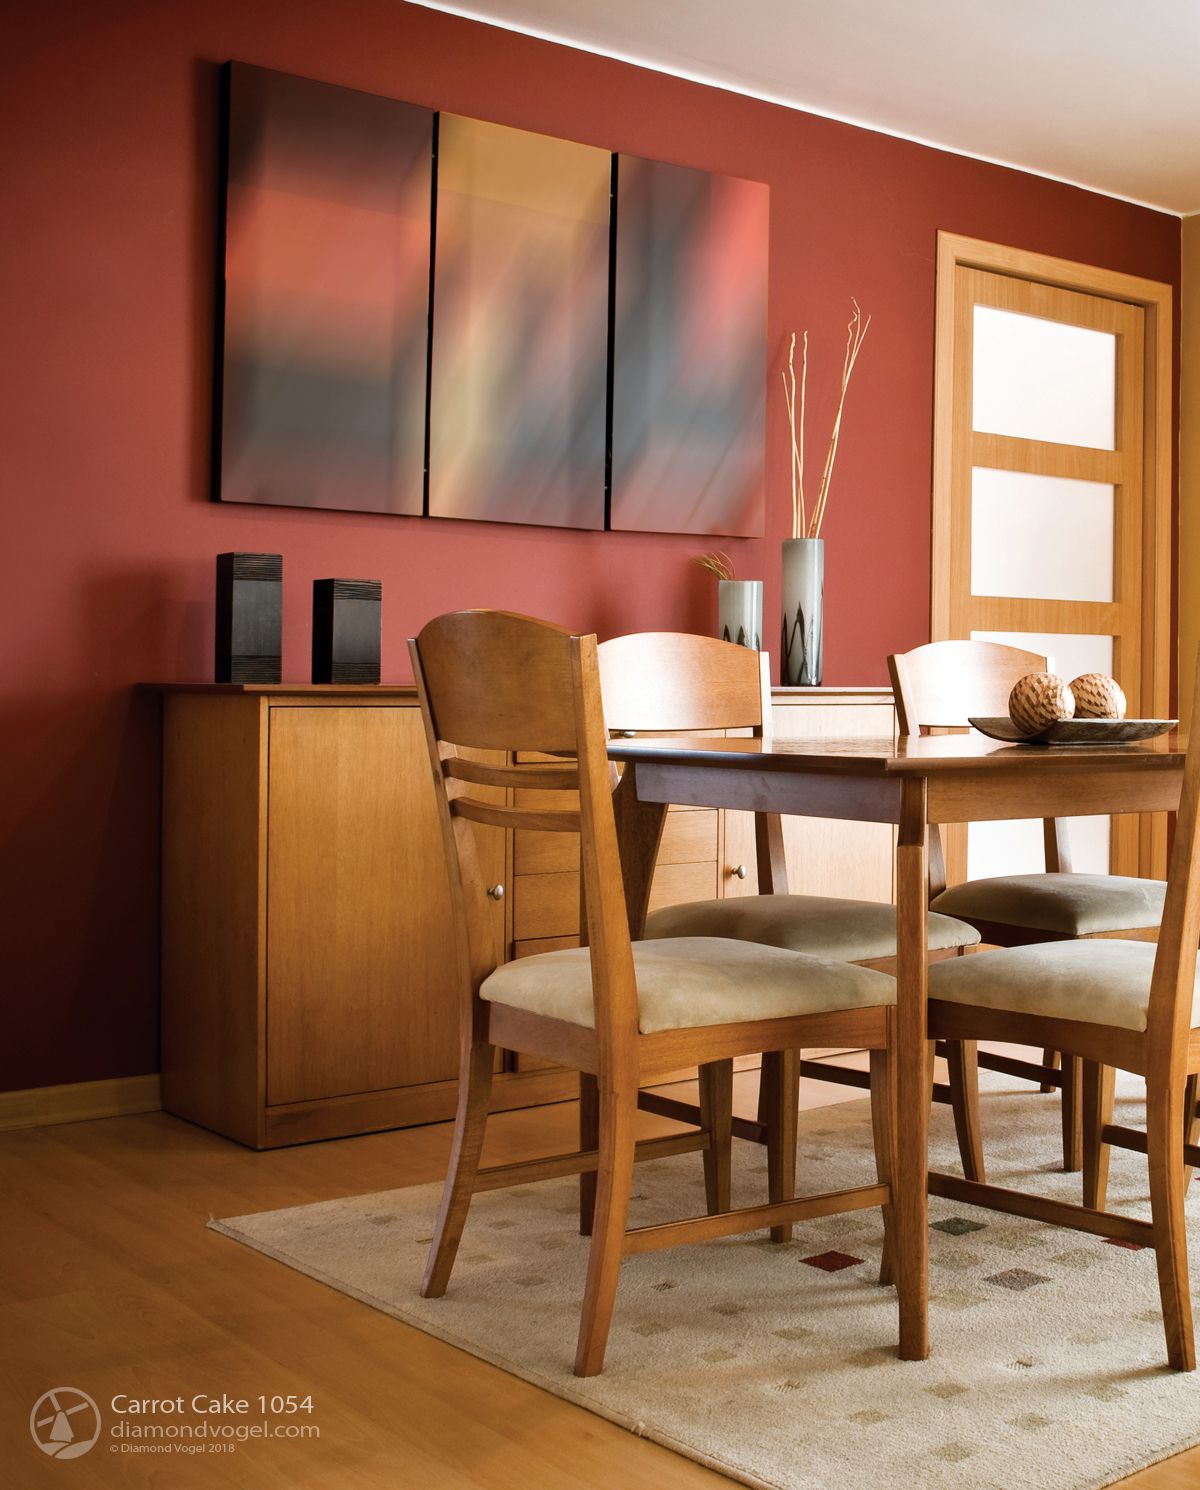 70 Modern Dining Room Ideas For 2019: Red Orange Dining Room Color 2019 Trending Colors Carrot